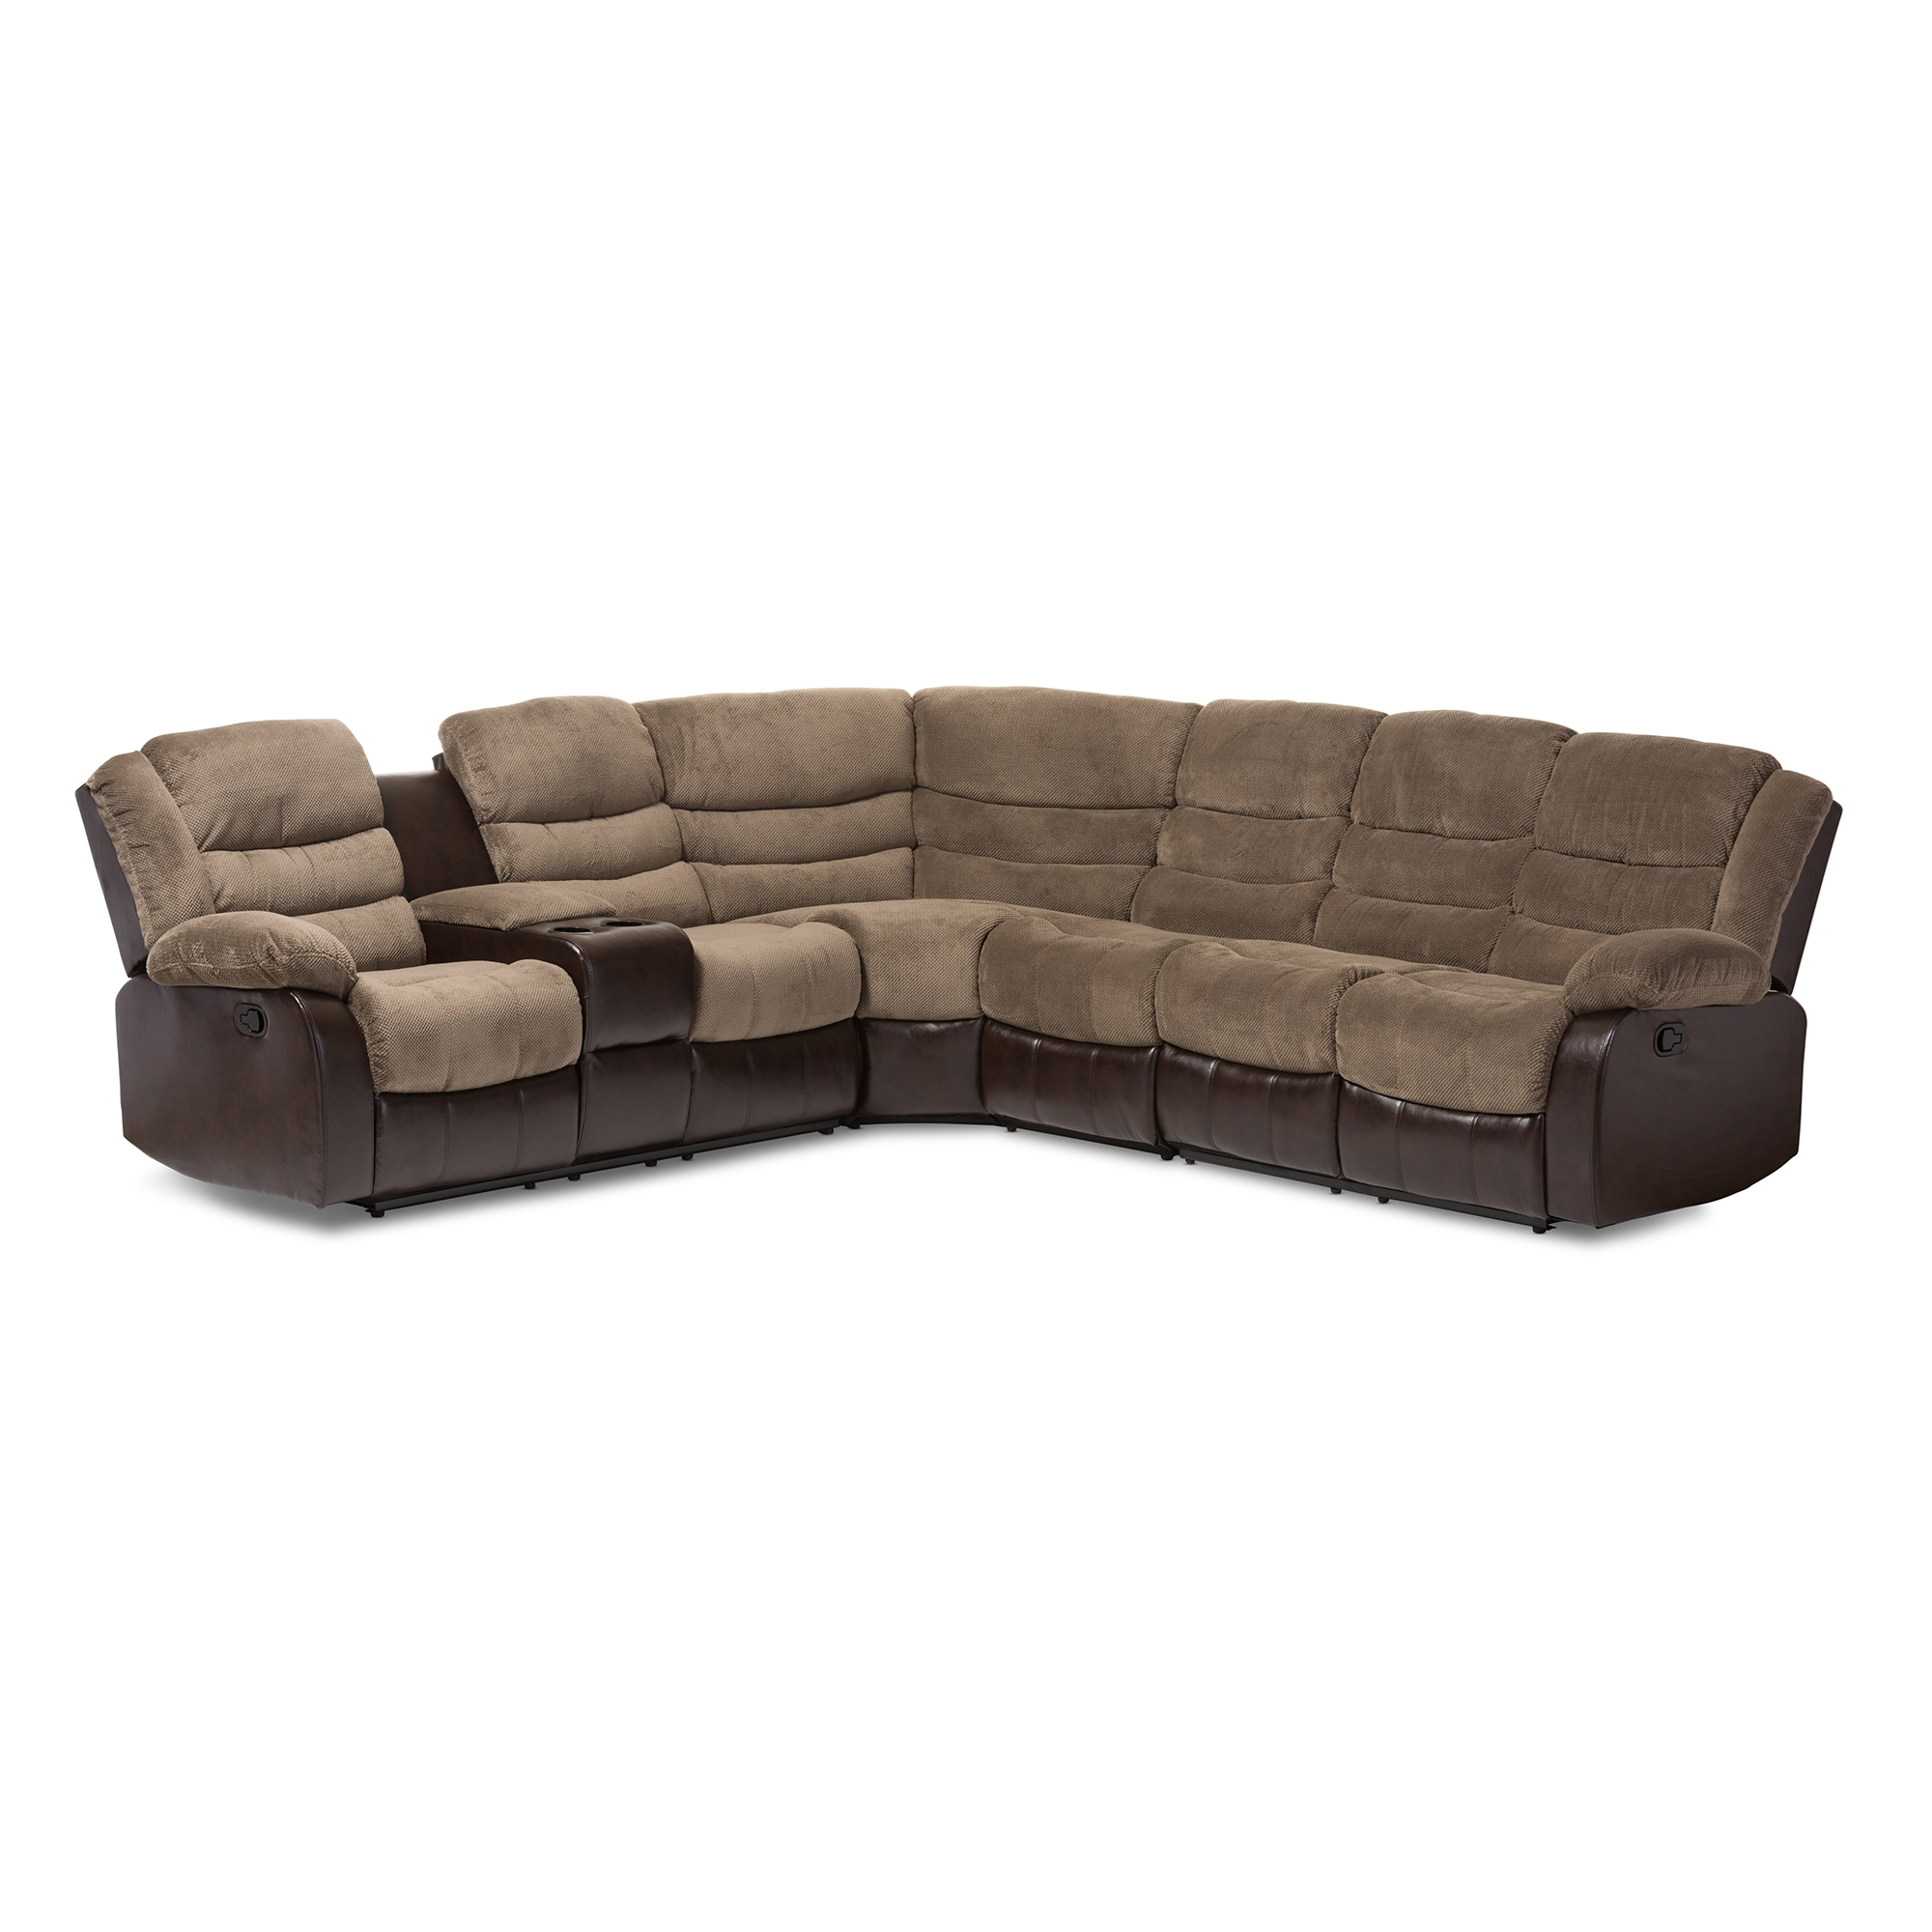 robinson and leather sofa high quality cushions baxton studio modern contemporary brown towel